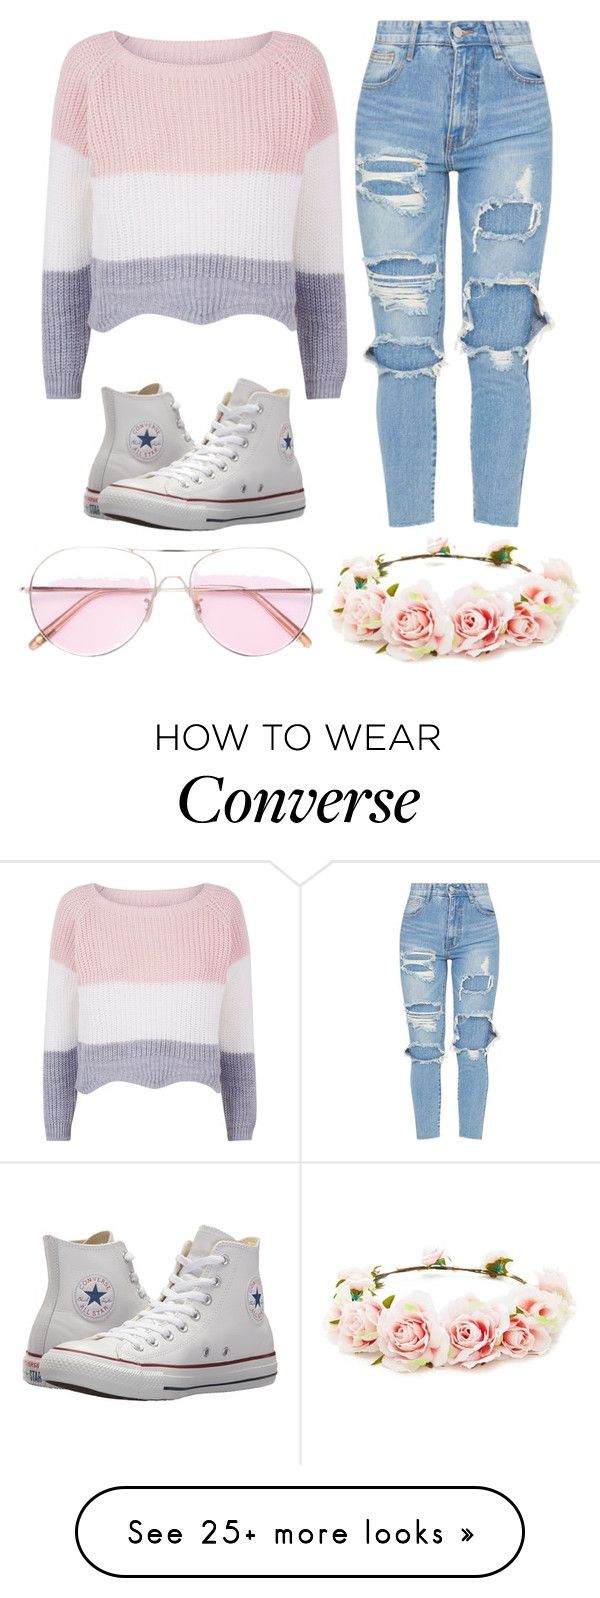 """Pastel Princess"" by ilasmessymind on Polyvore featuring Converse, Oliver Peoples, Forever 21 and pastelsweaters"